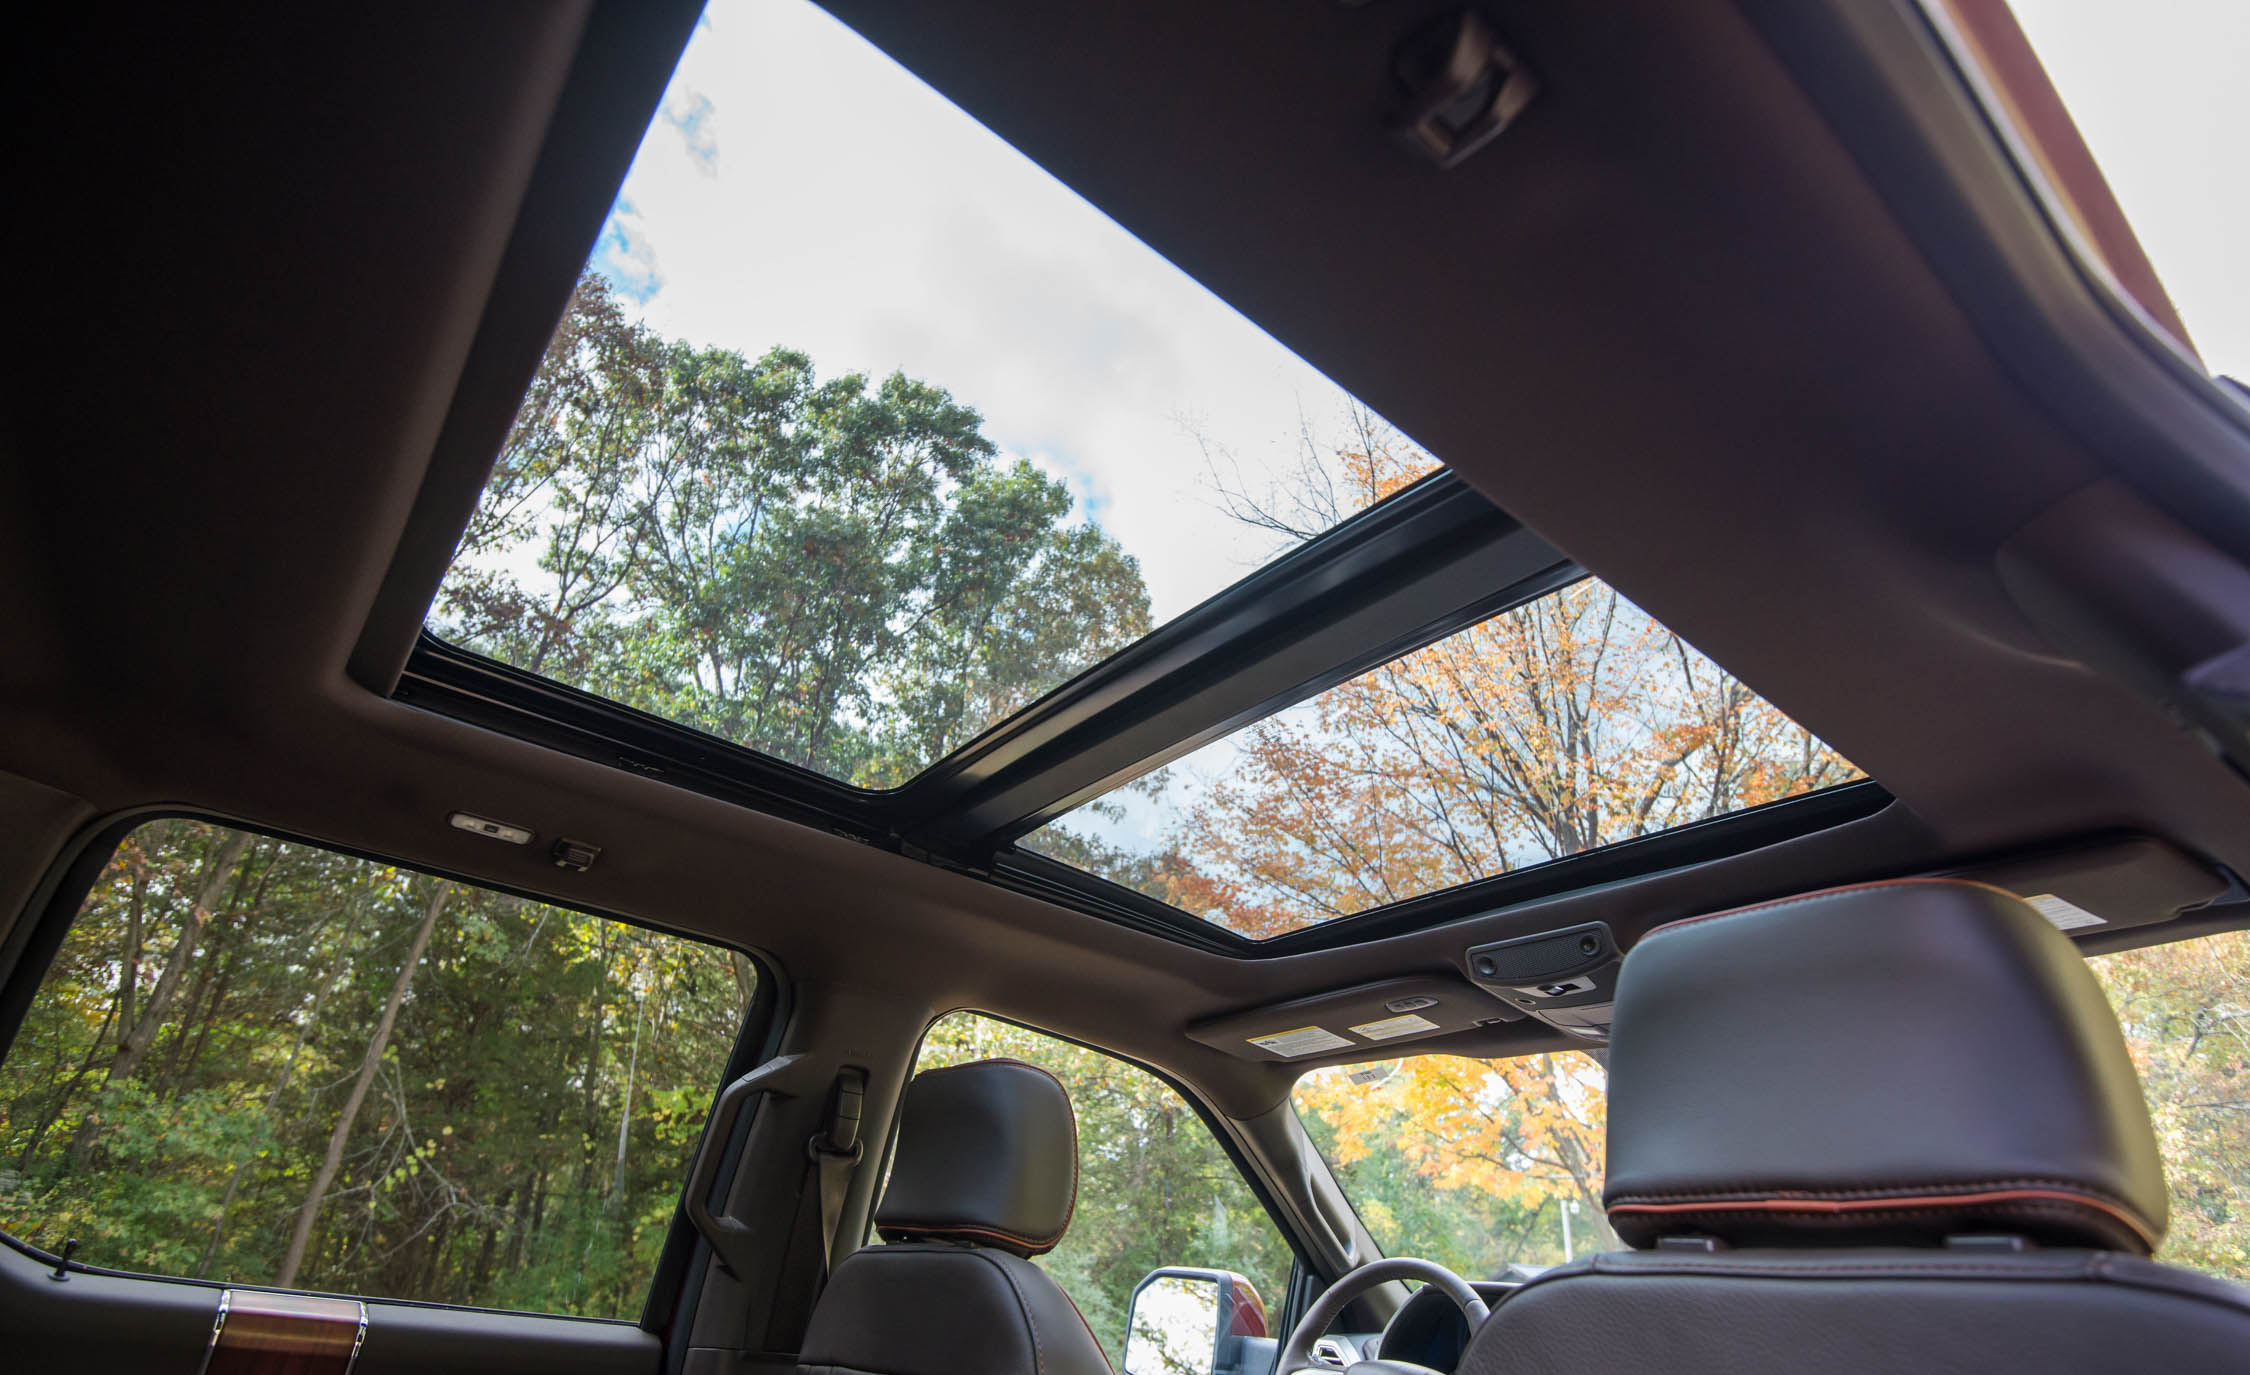 2017 Ford F 150 King Ranch Interior View Sunroof (Photo 2 of 50)